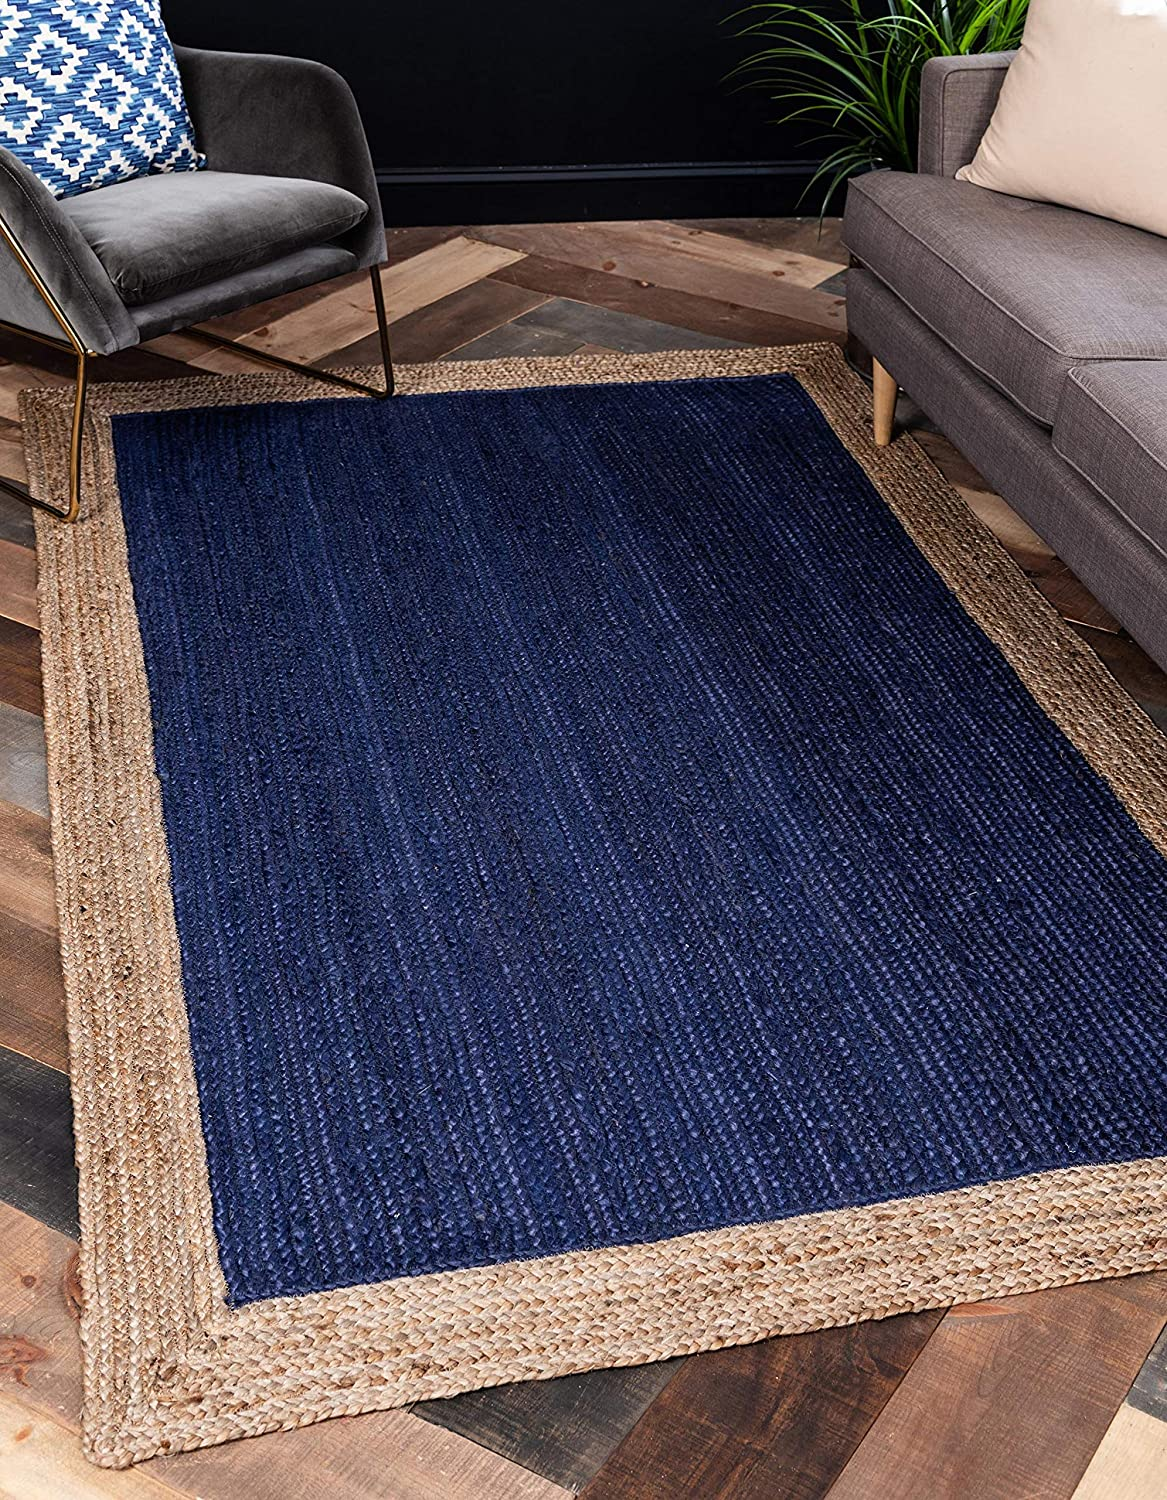 Unique Loom Braided Jute Collection Hand Woven Casual with Navy Border Coastal Natural Area Rug (2' x 3')